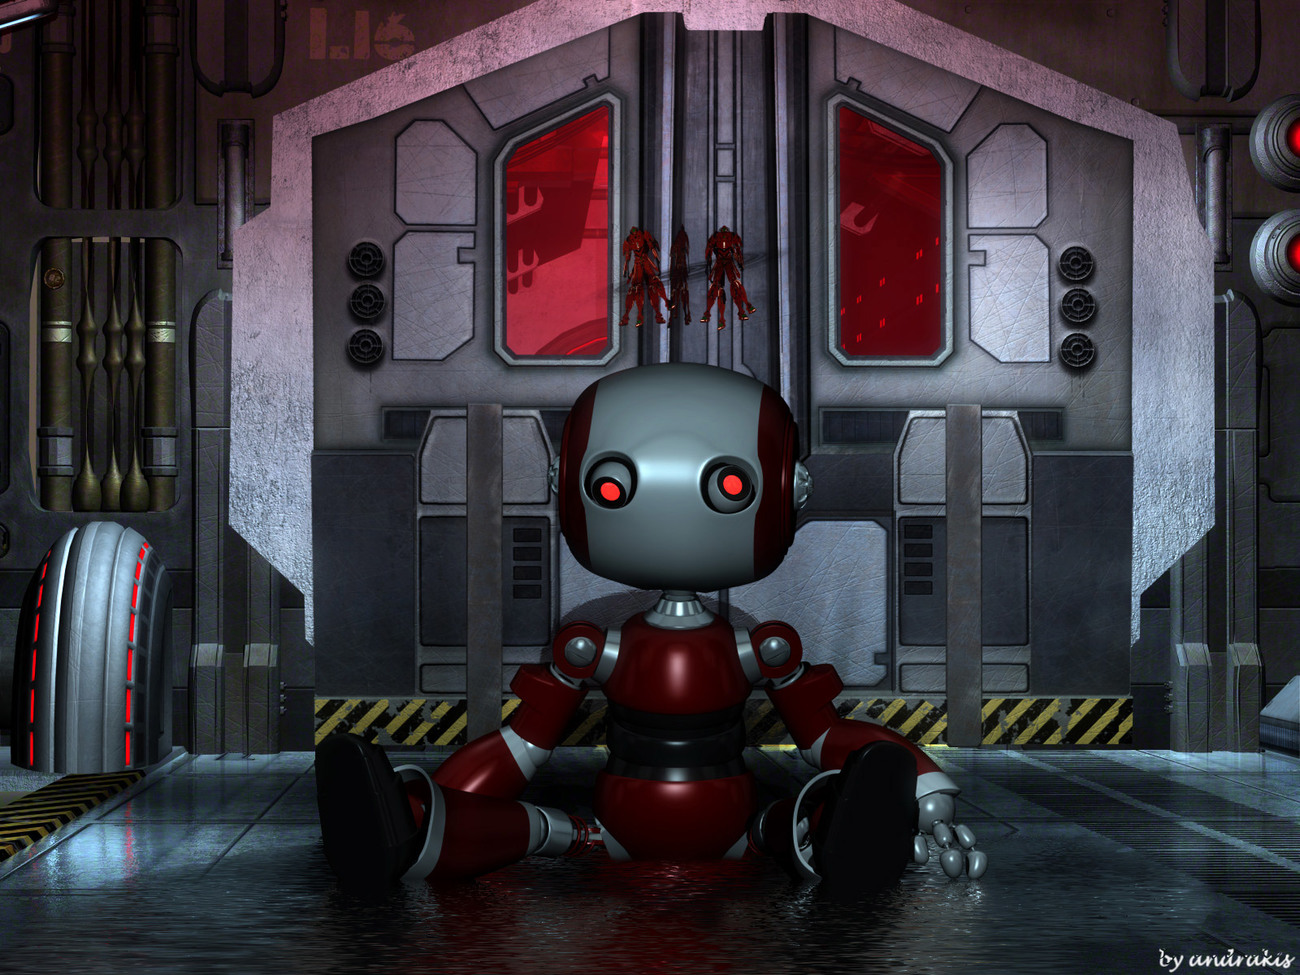 Robot by andrakis